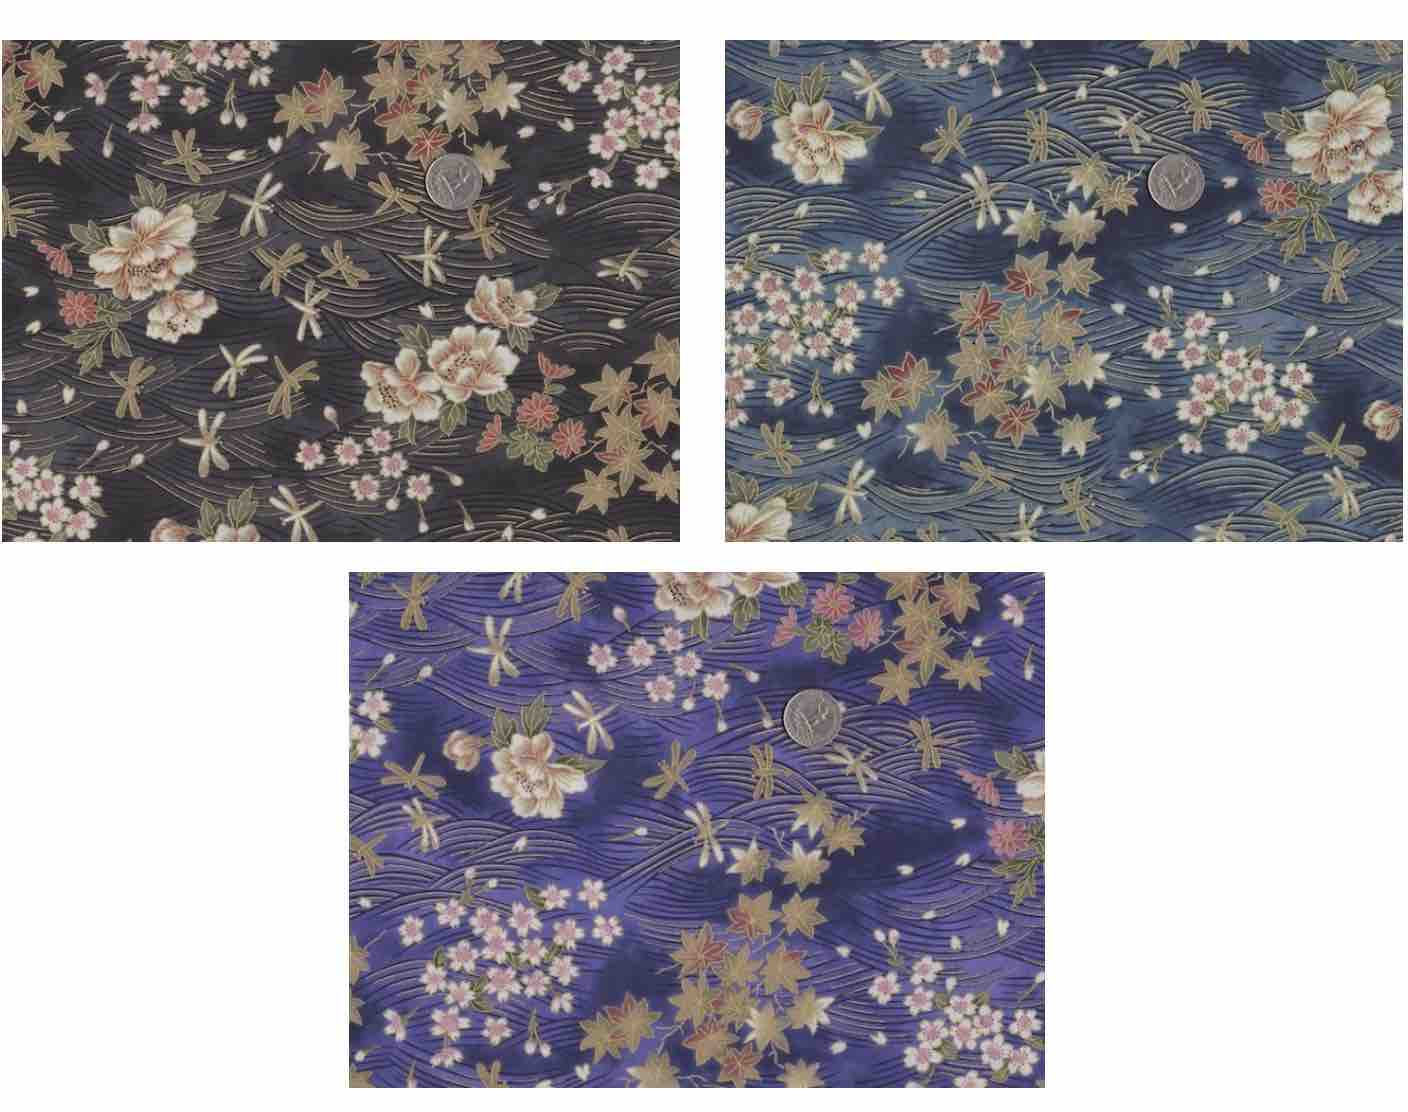 dragonflies and peonies flat bottom bag for mahjong tiles, knitting projects or notions,